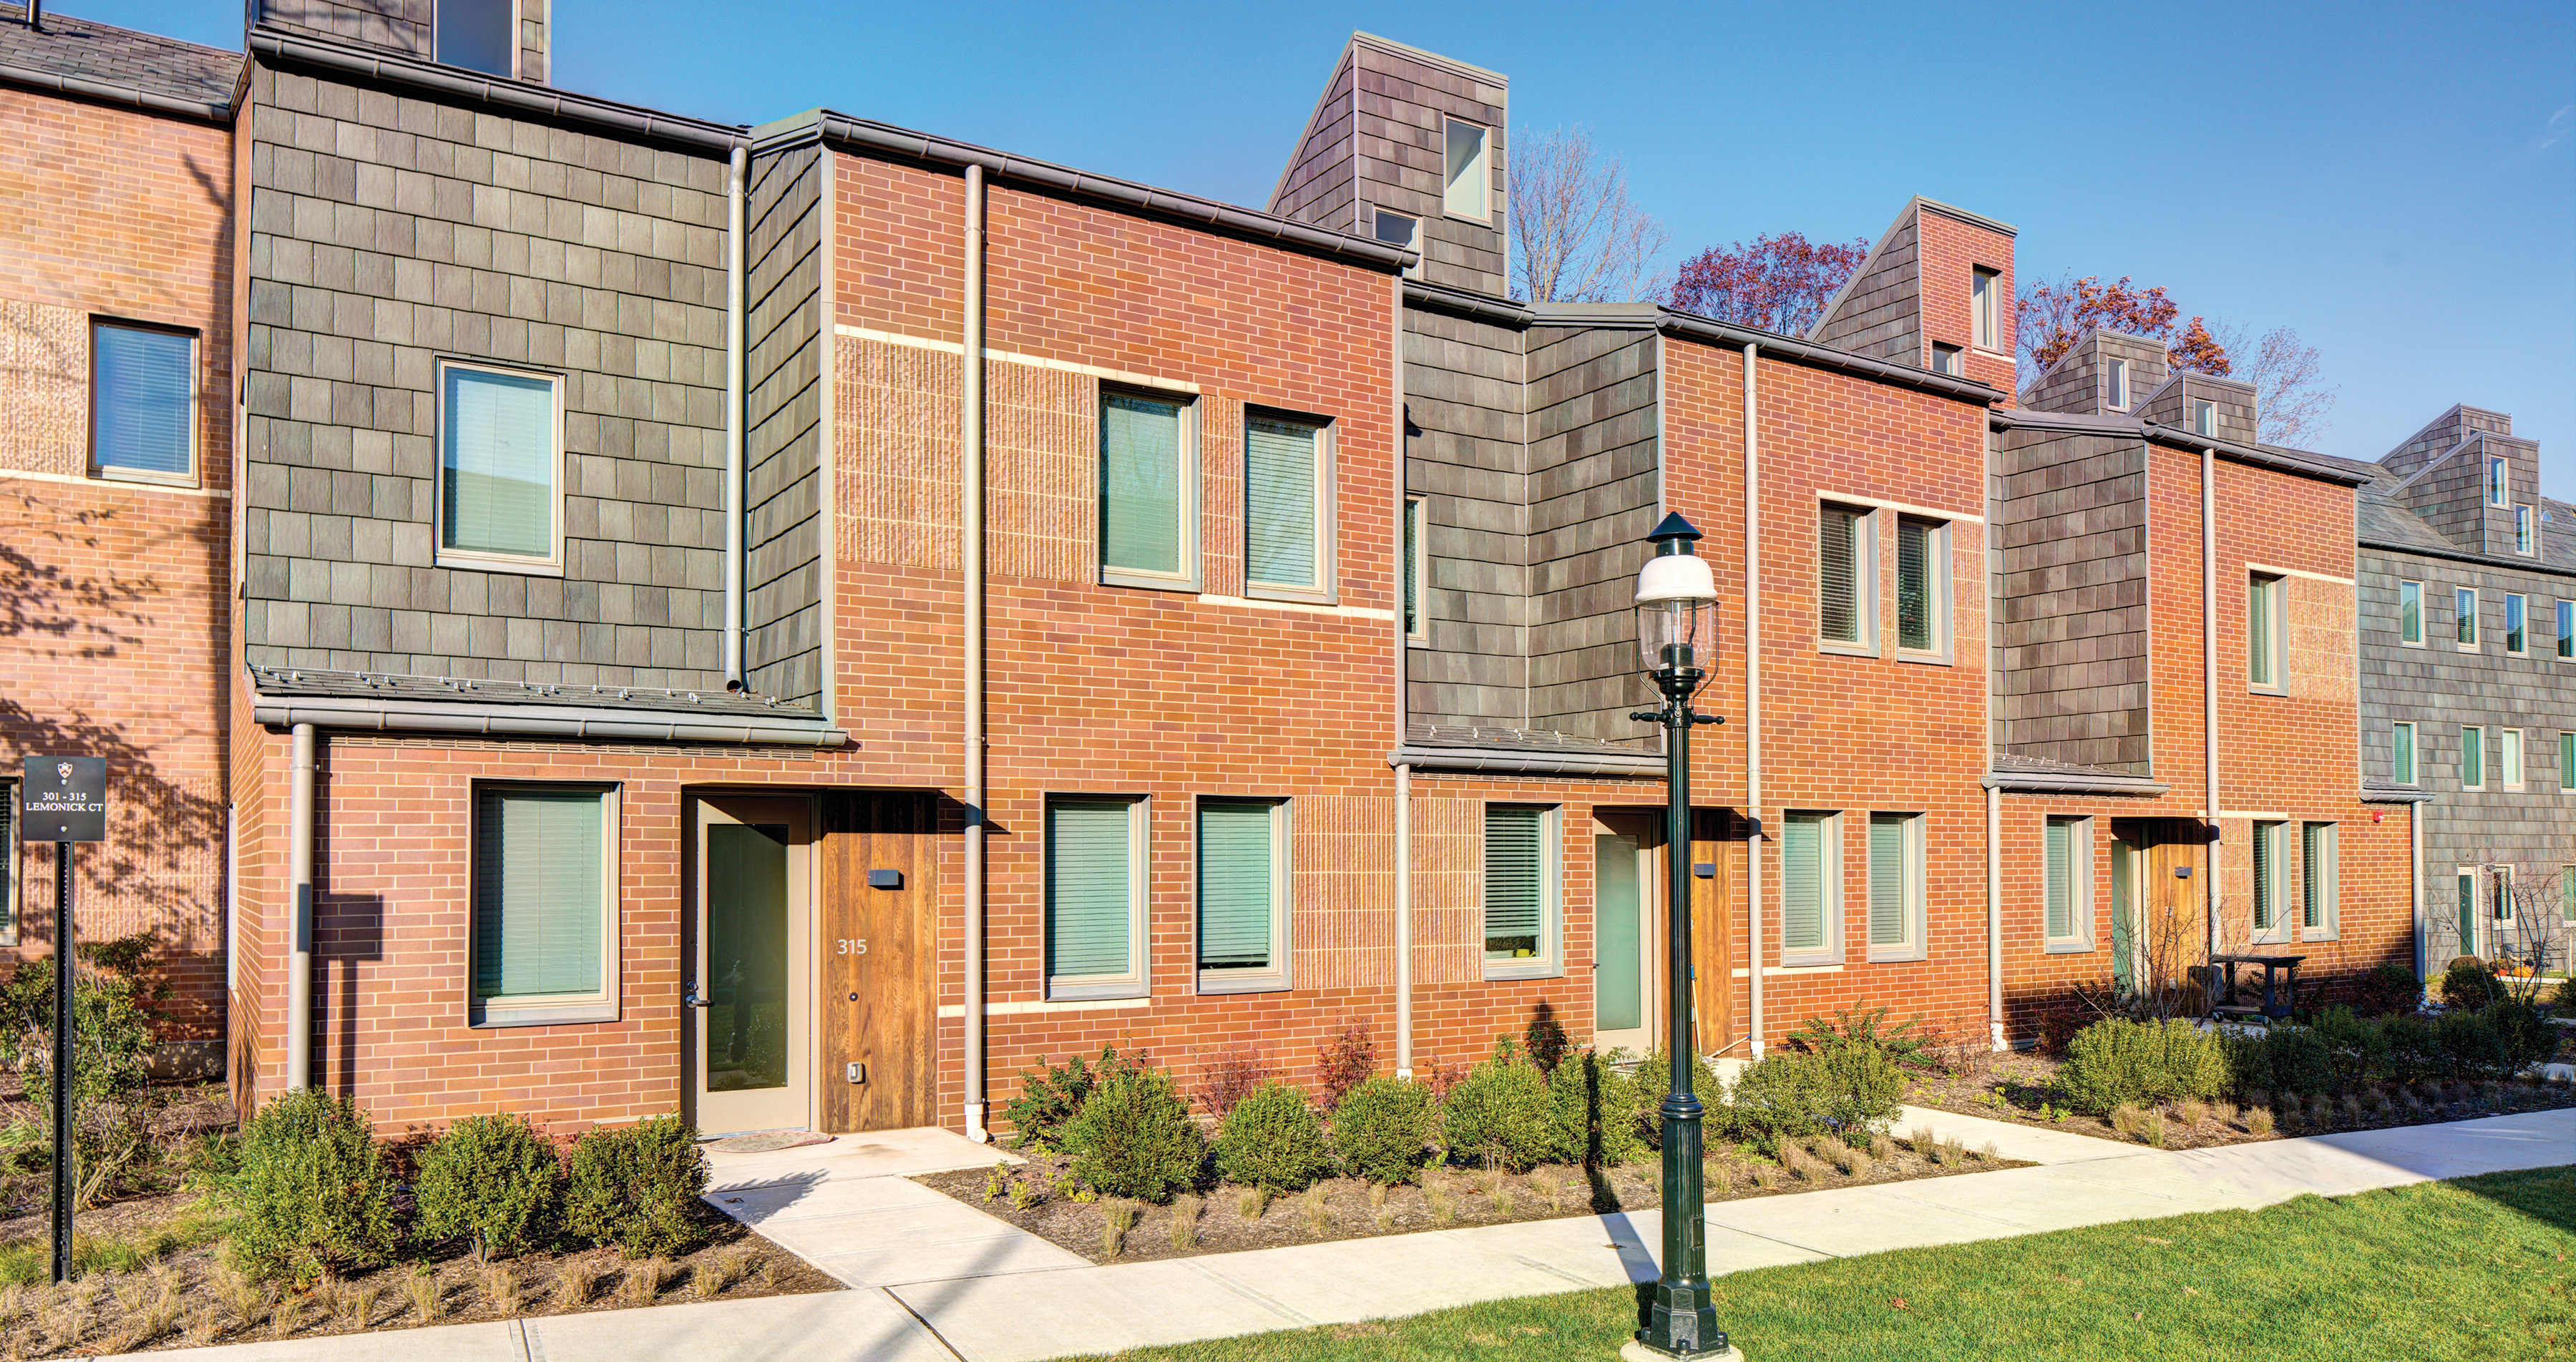 Student Apartments For Rent in Princeton, NJ near ...